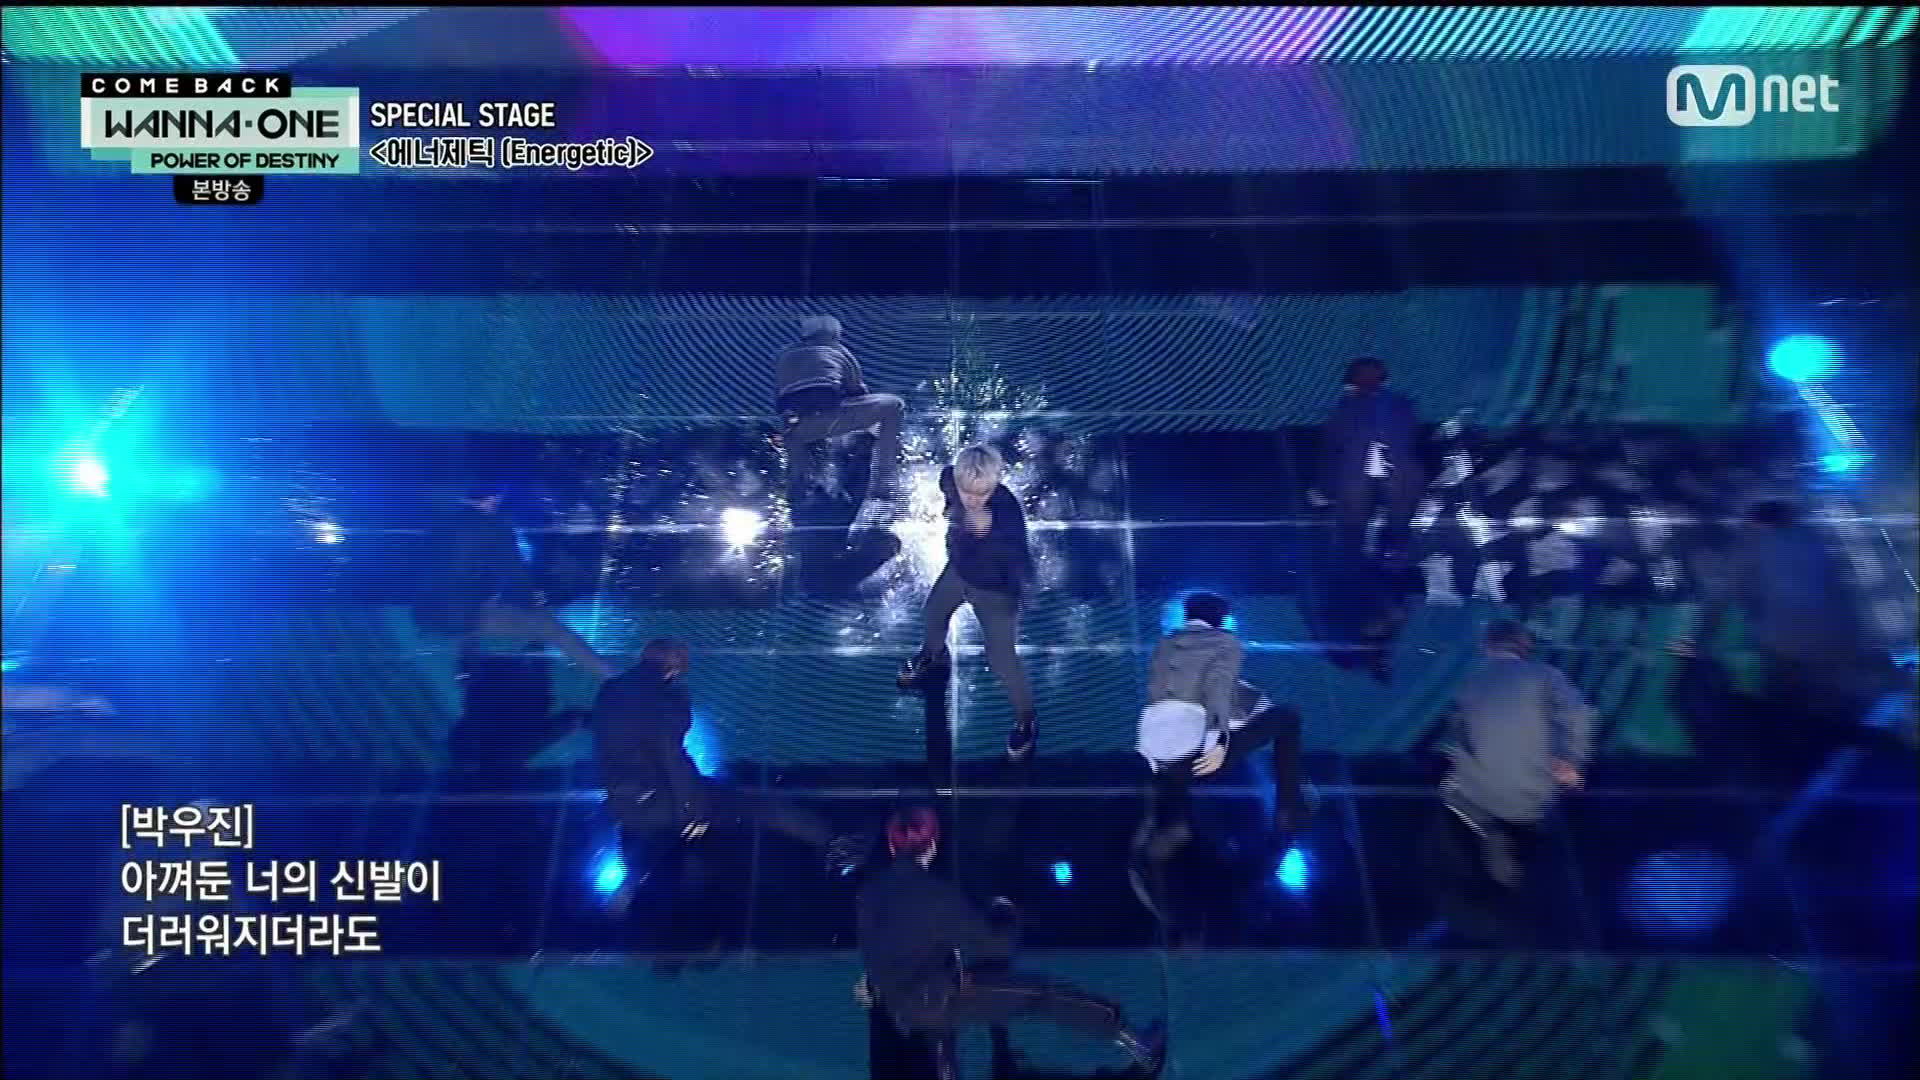 Wanna One Energetic 181122 Mnet Comeback Wanna One Power Of